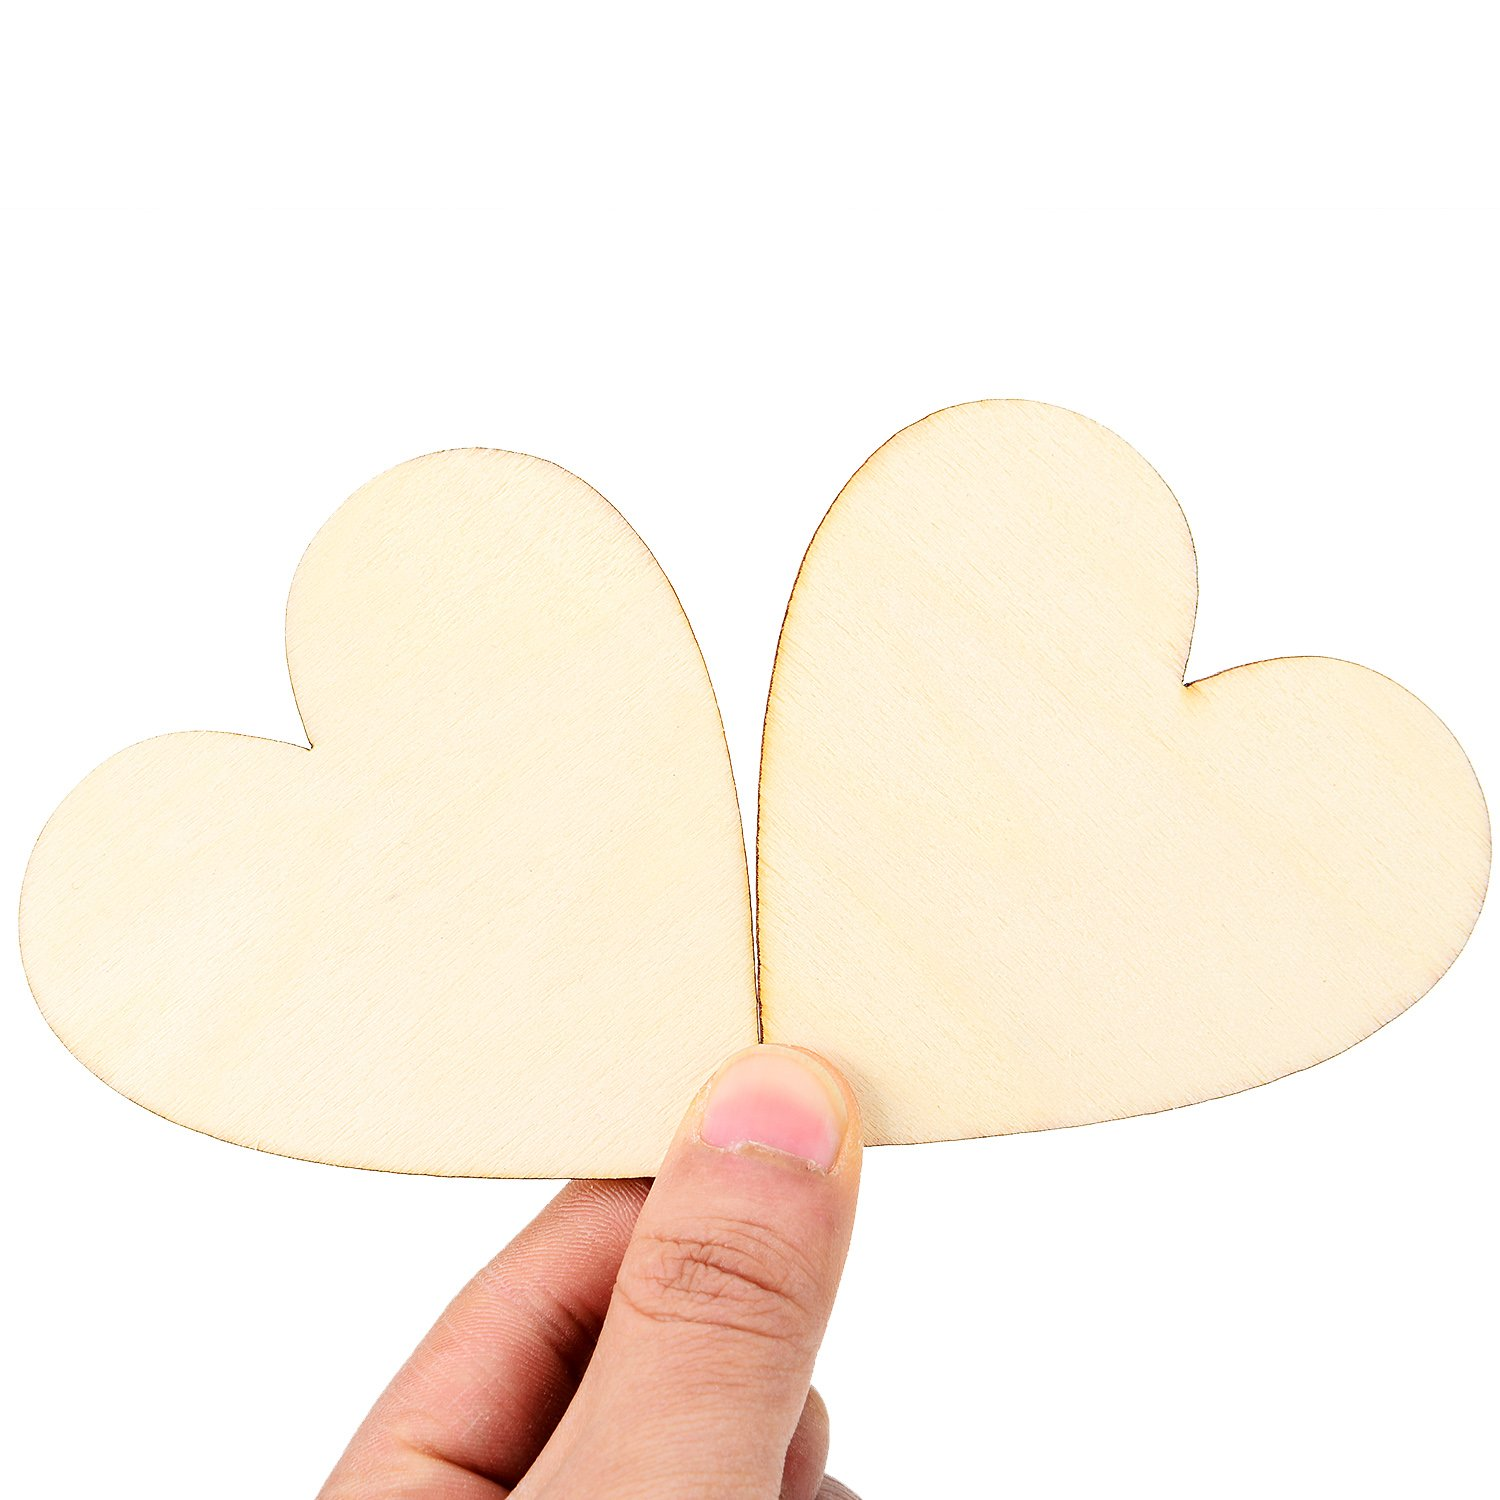 50 Pieces Decor Arts Crafts DIY Frienda 3.15 Inch Wood Hearts Slices Wooden Discs Heart Shaped Embellishment for Wedding 3.15 inch